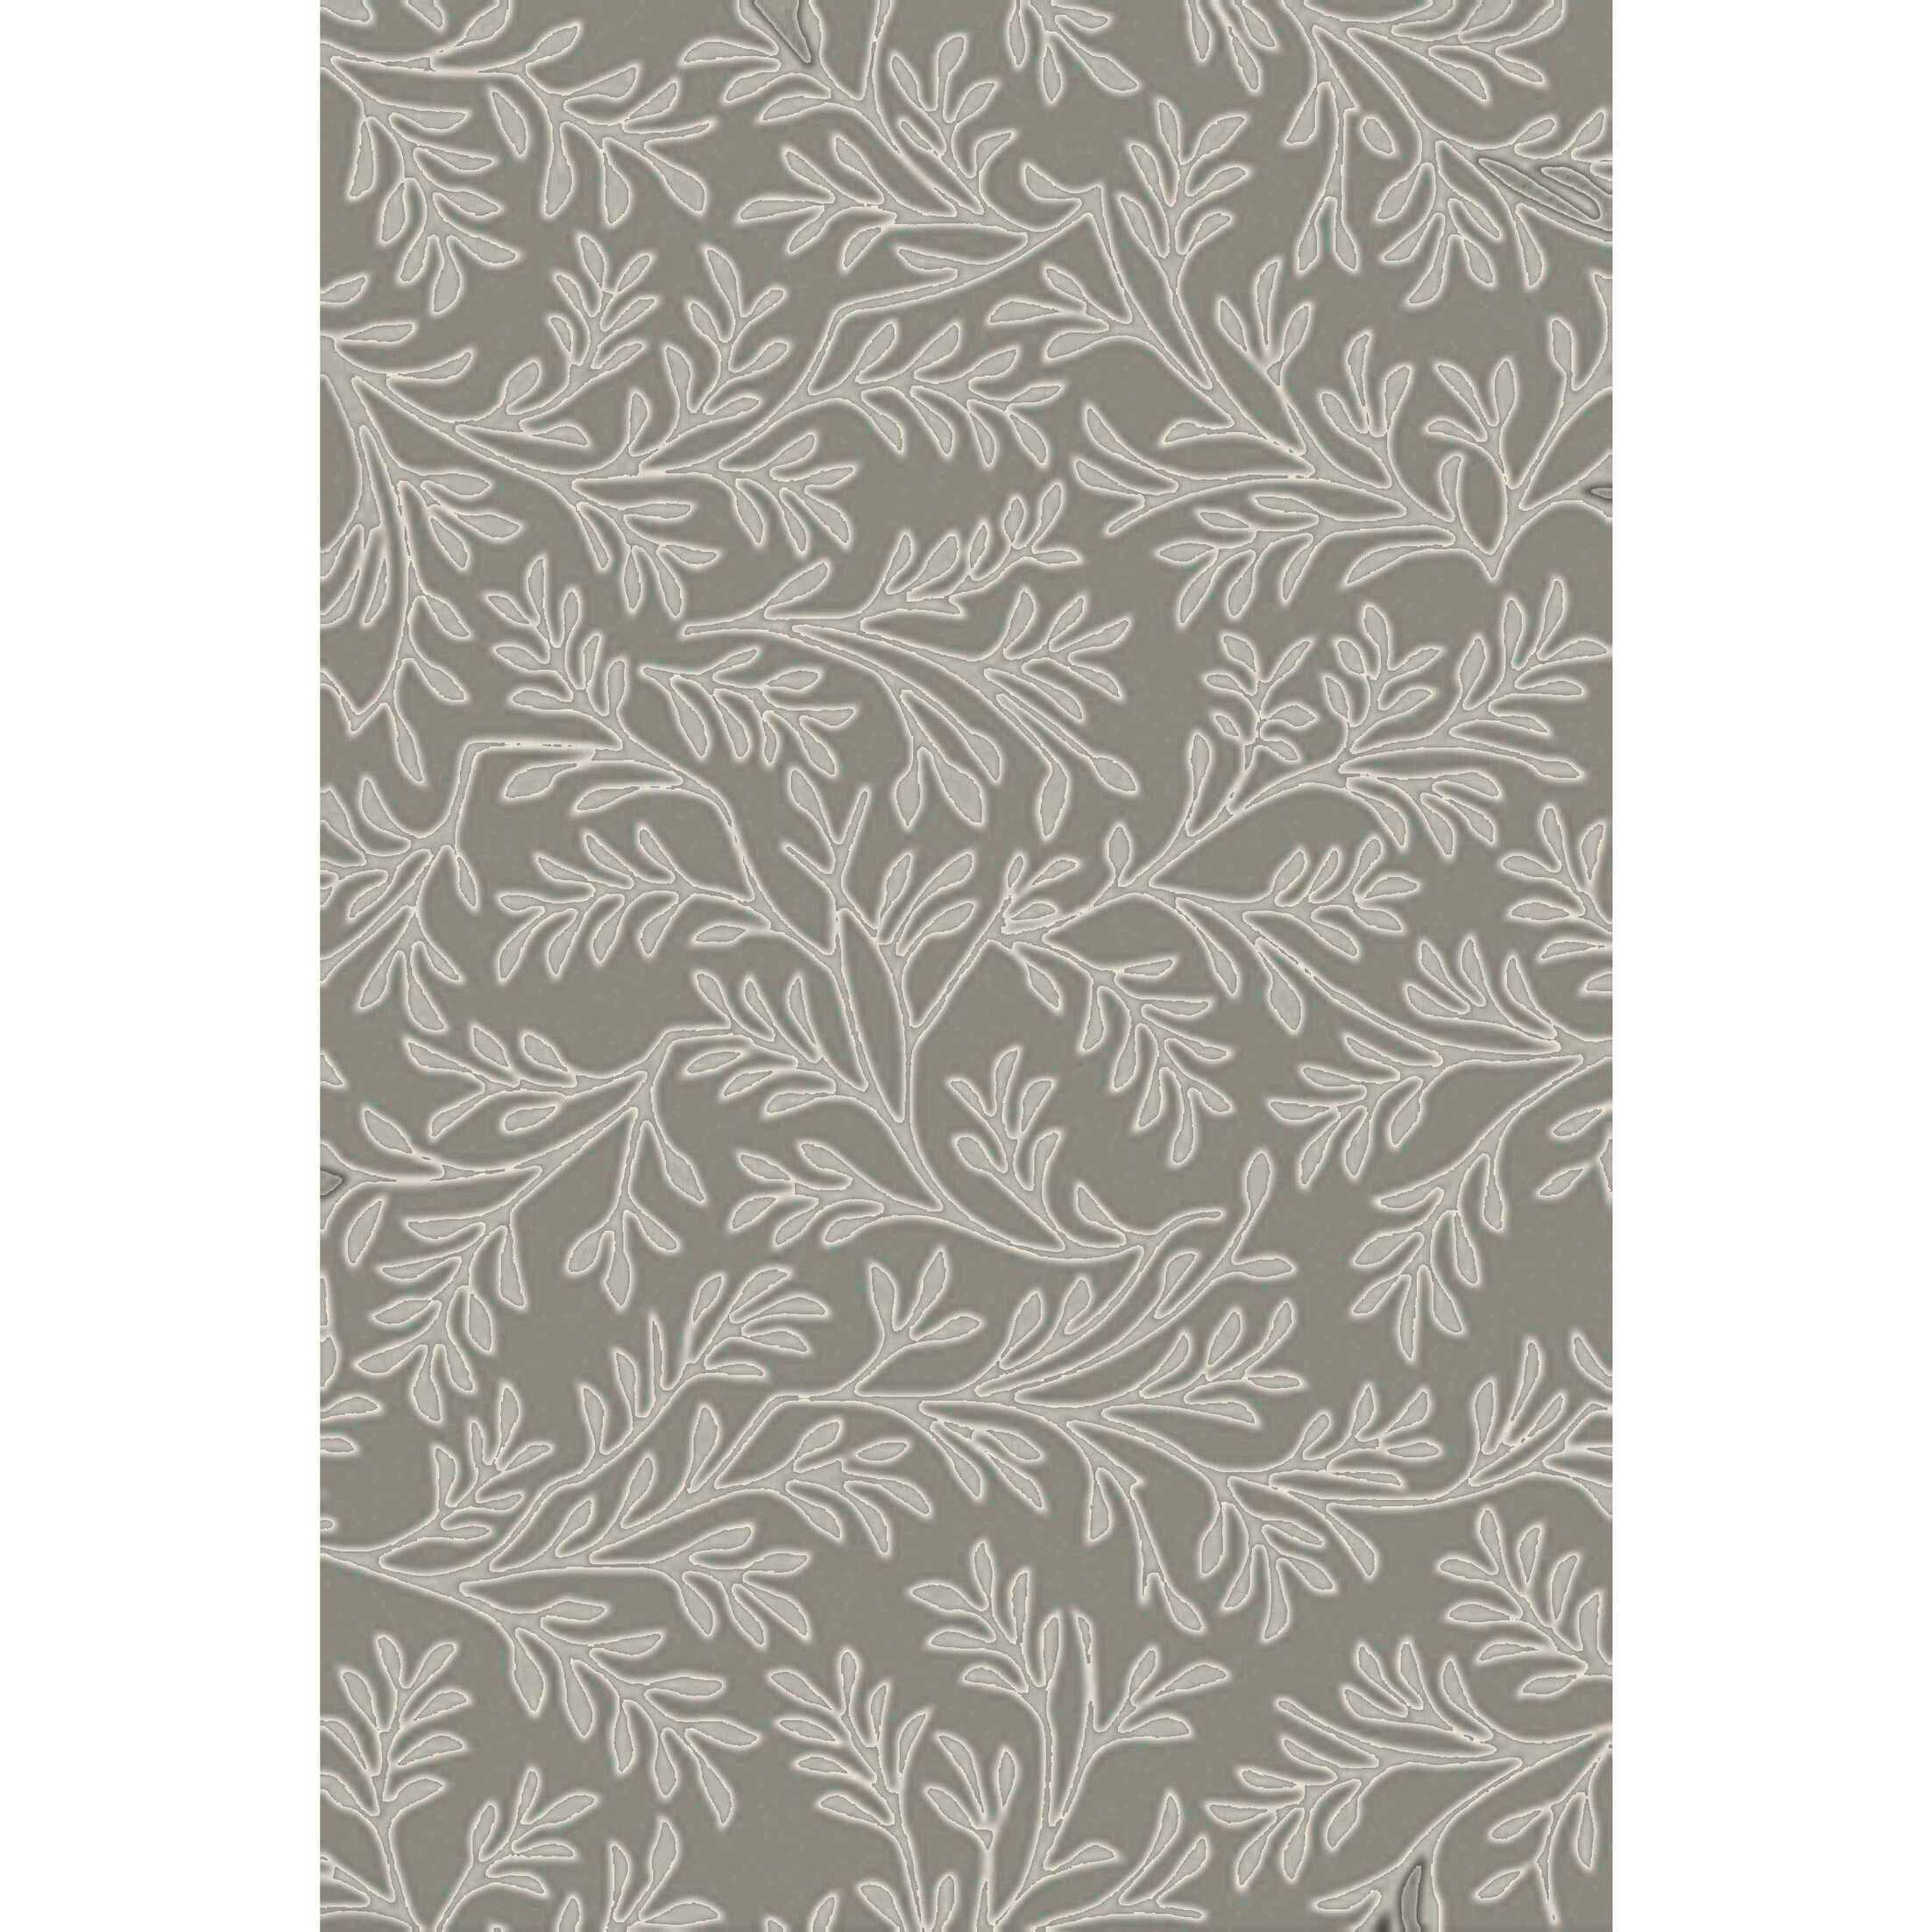 Grant Hand-Tufted Light Gray/Beige Area Rug Rug Size: Rectangle 3'6